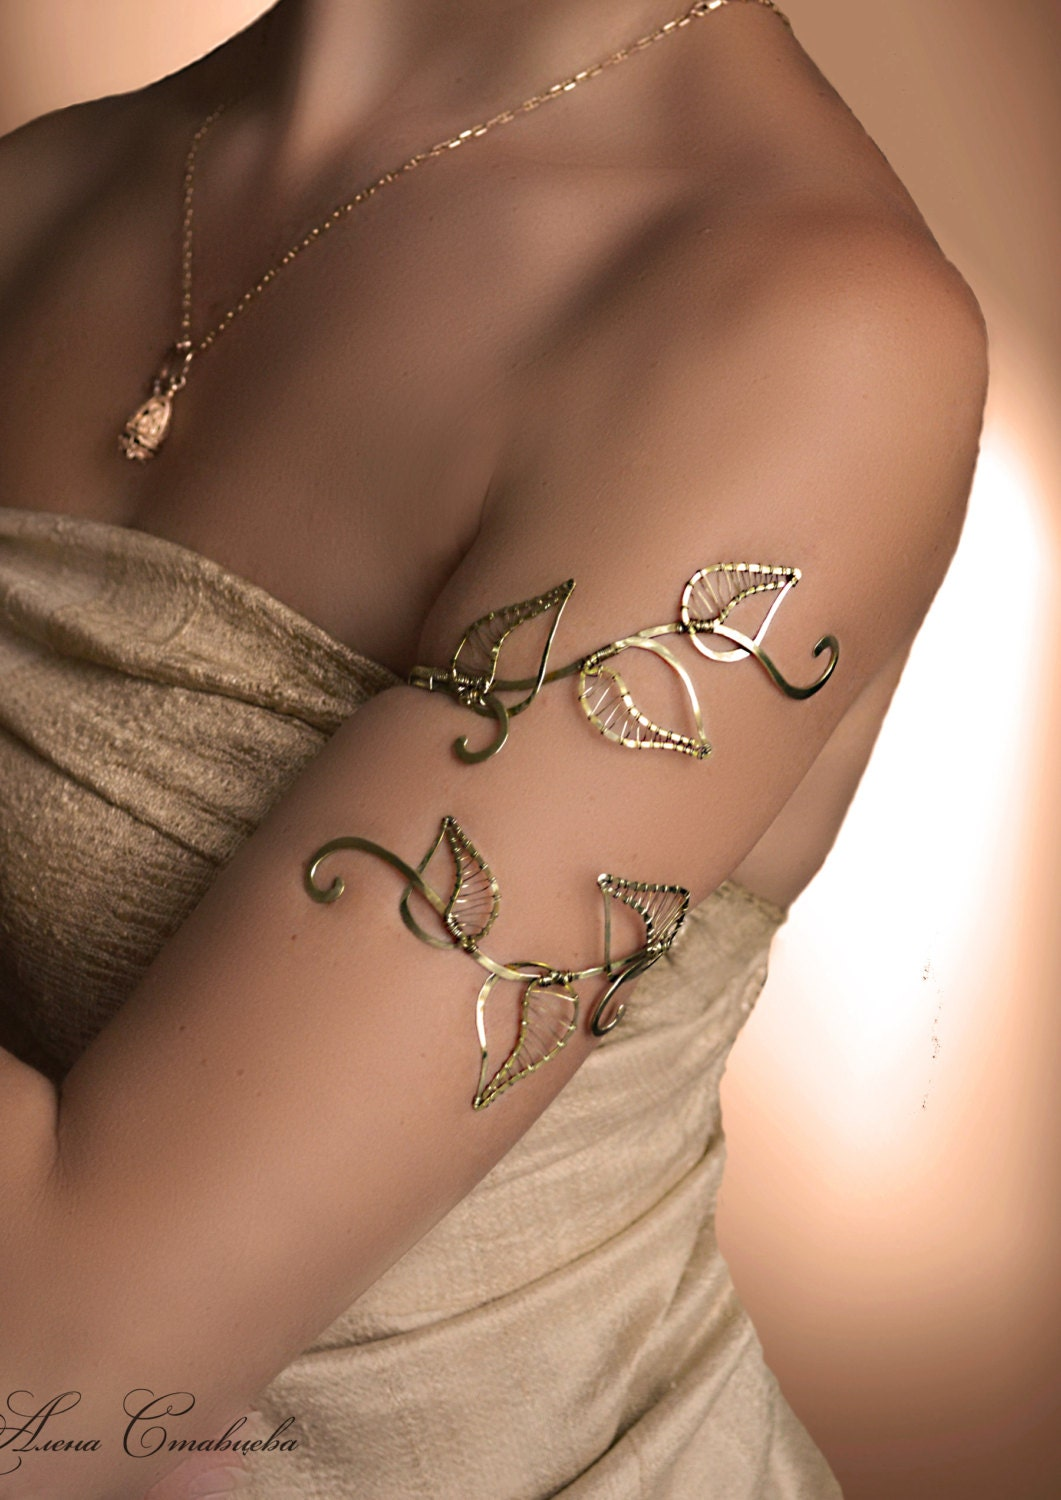 leaf arm cuff upper arm cuff jewelry swirling arm cuff